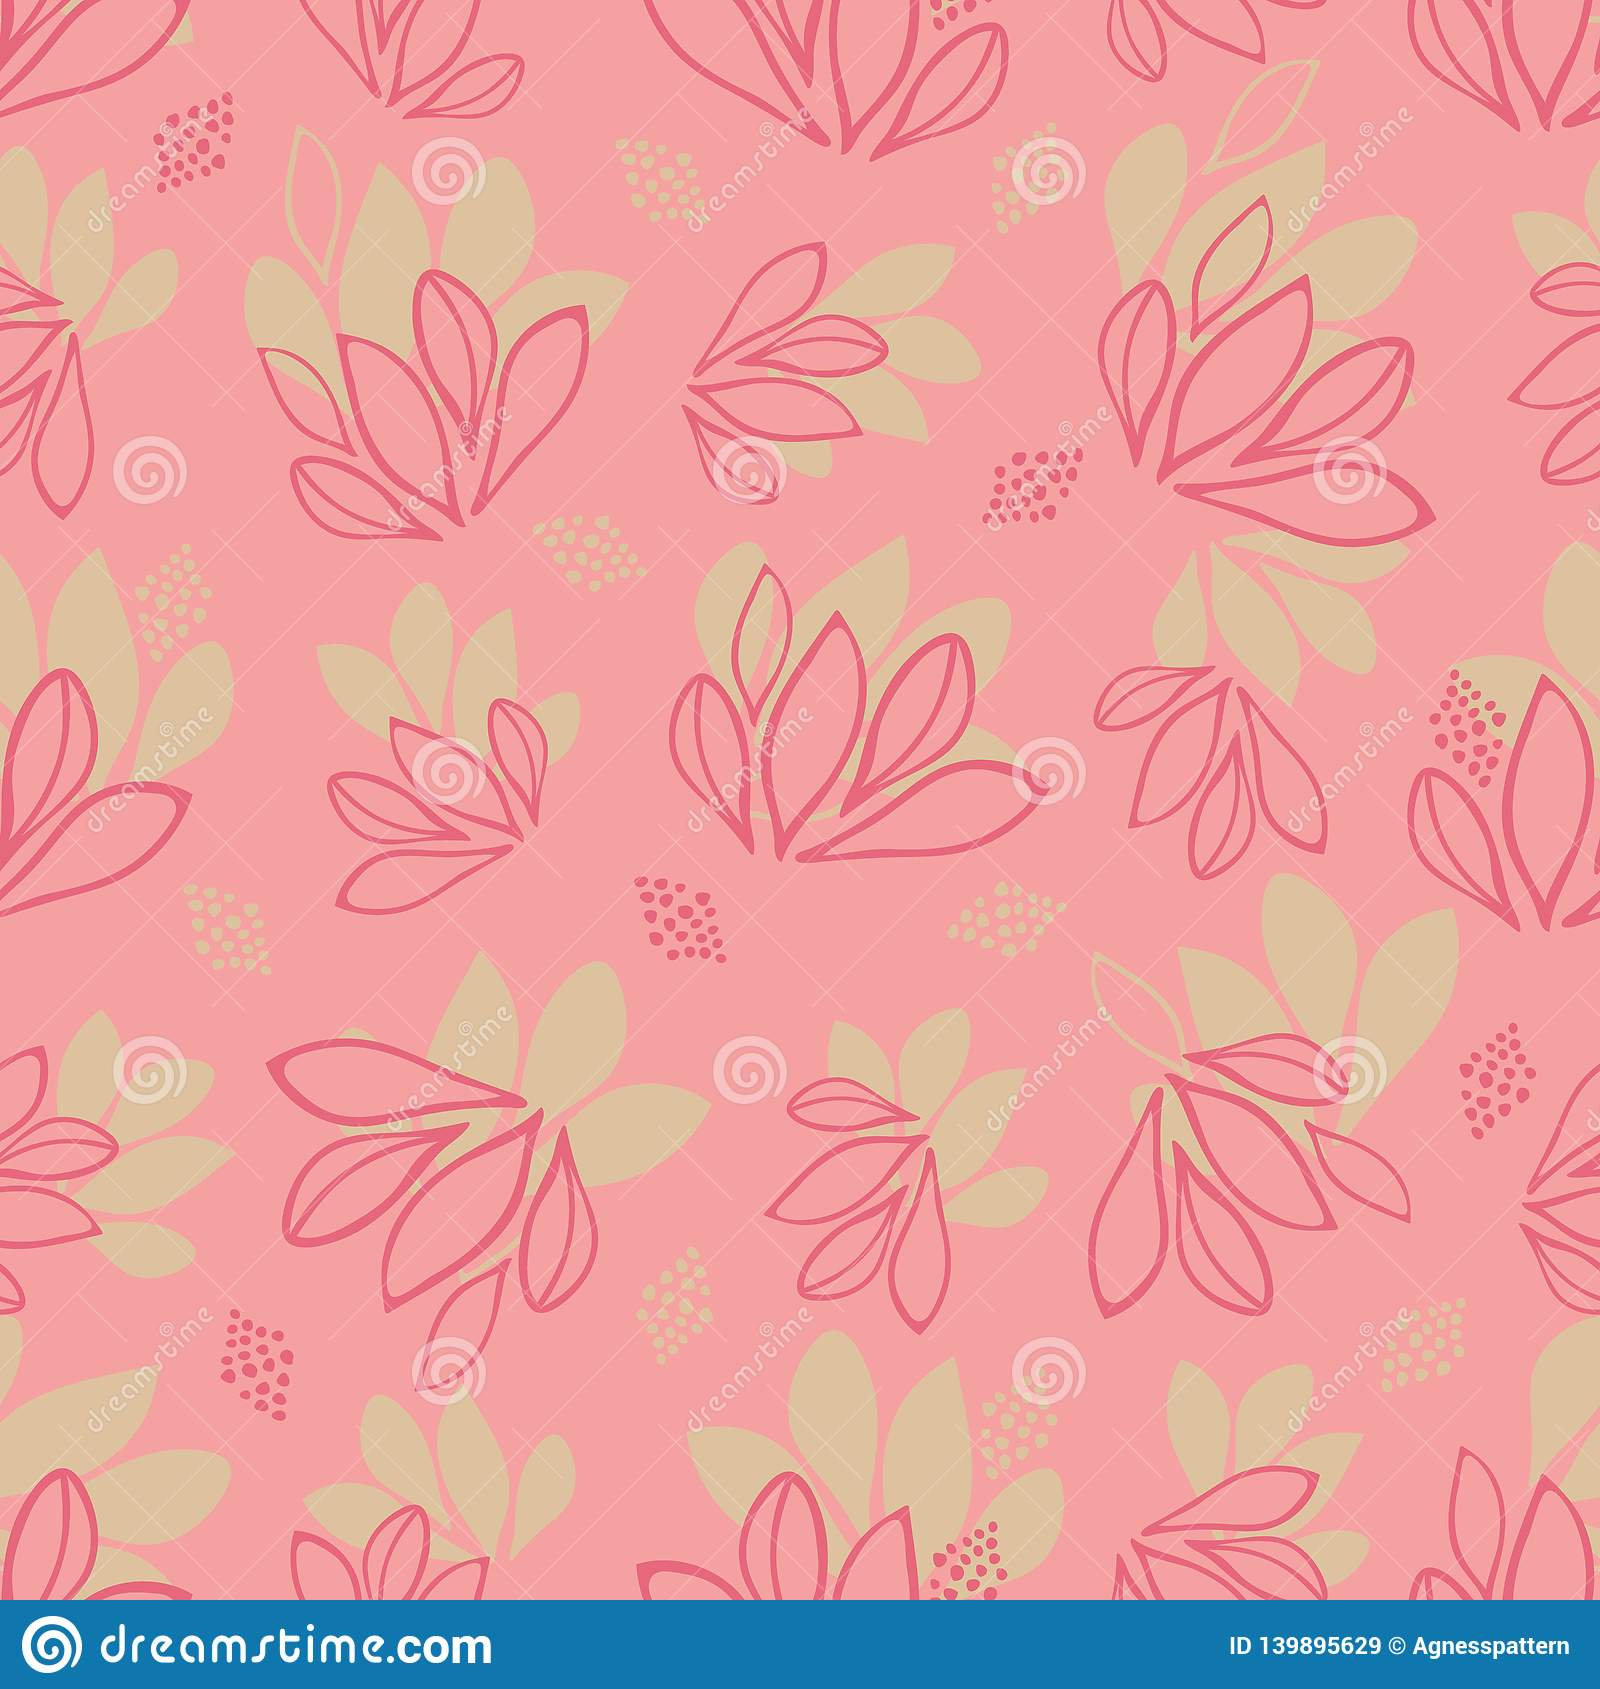 Girly Abstract Leaves Vector Seamless Texture Pattern On Pink